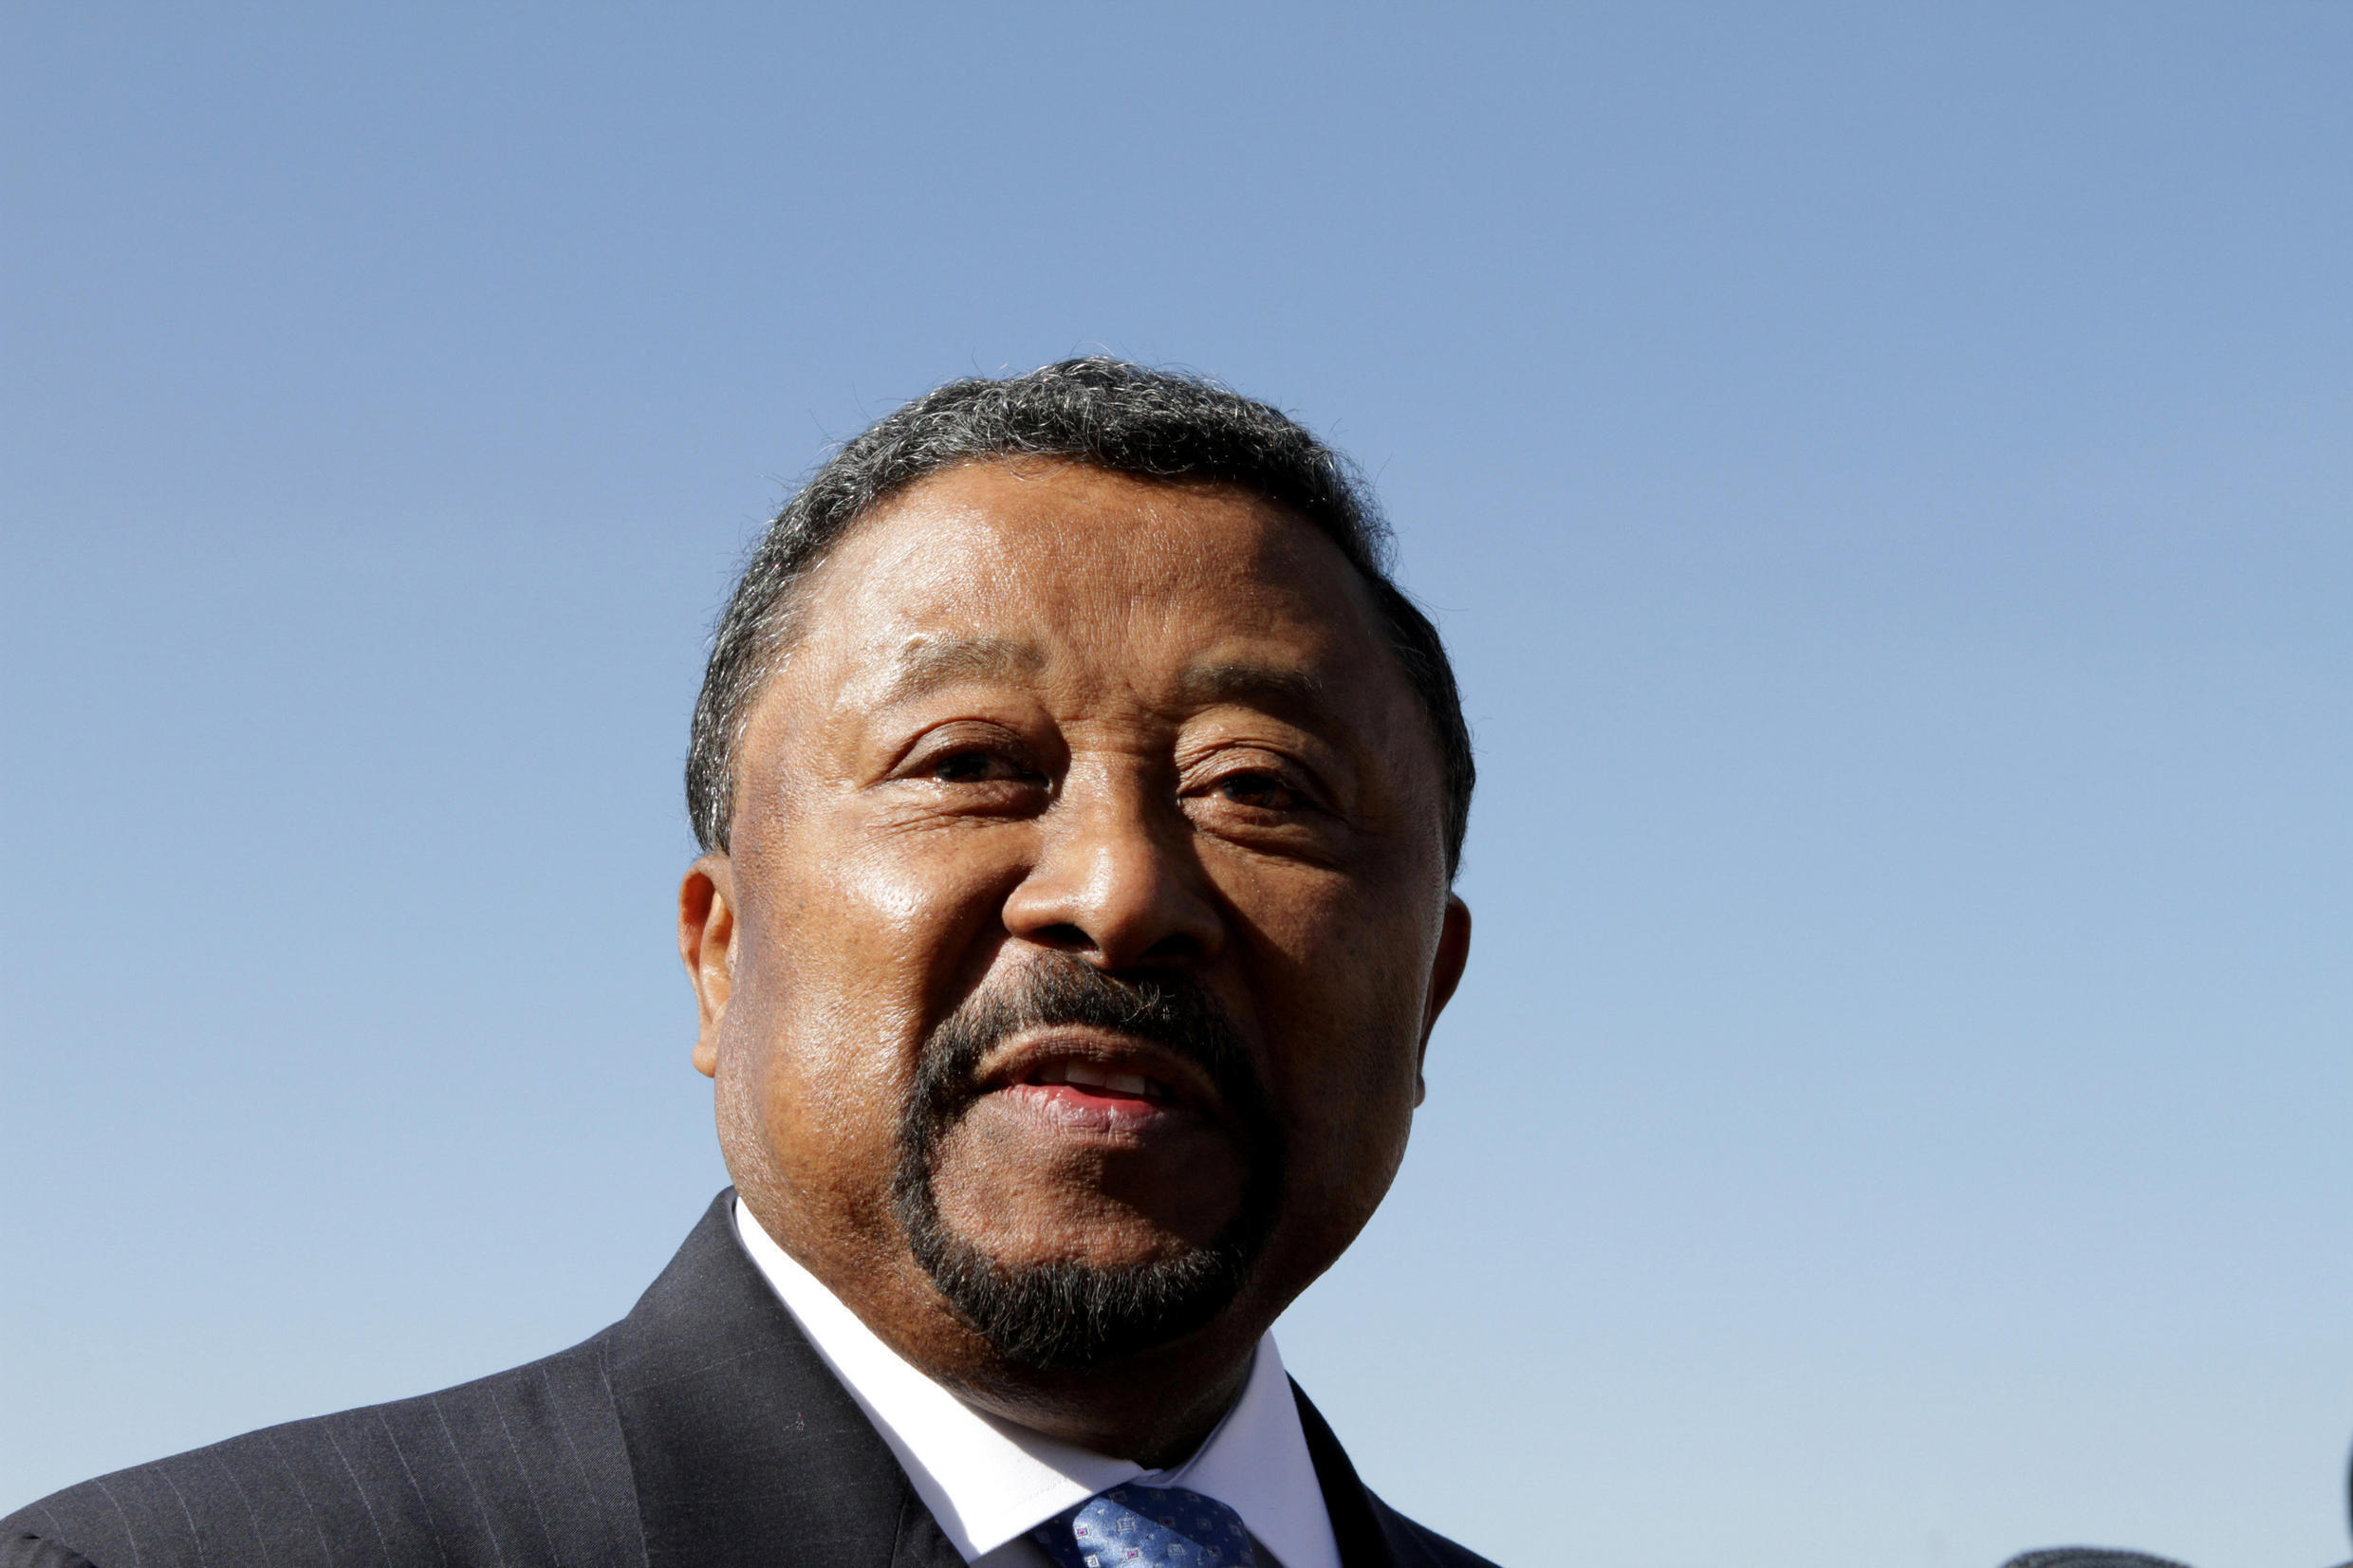 African Union Commission chairman Jean Ping arrives for the 18th African Union (AU) Summit in the Ethiopia's capital Addis Ababa, January 29, 2012.